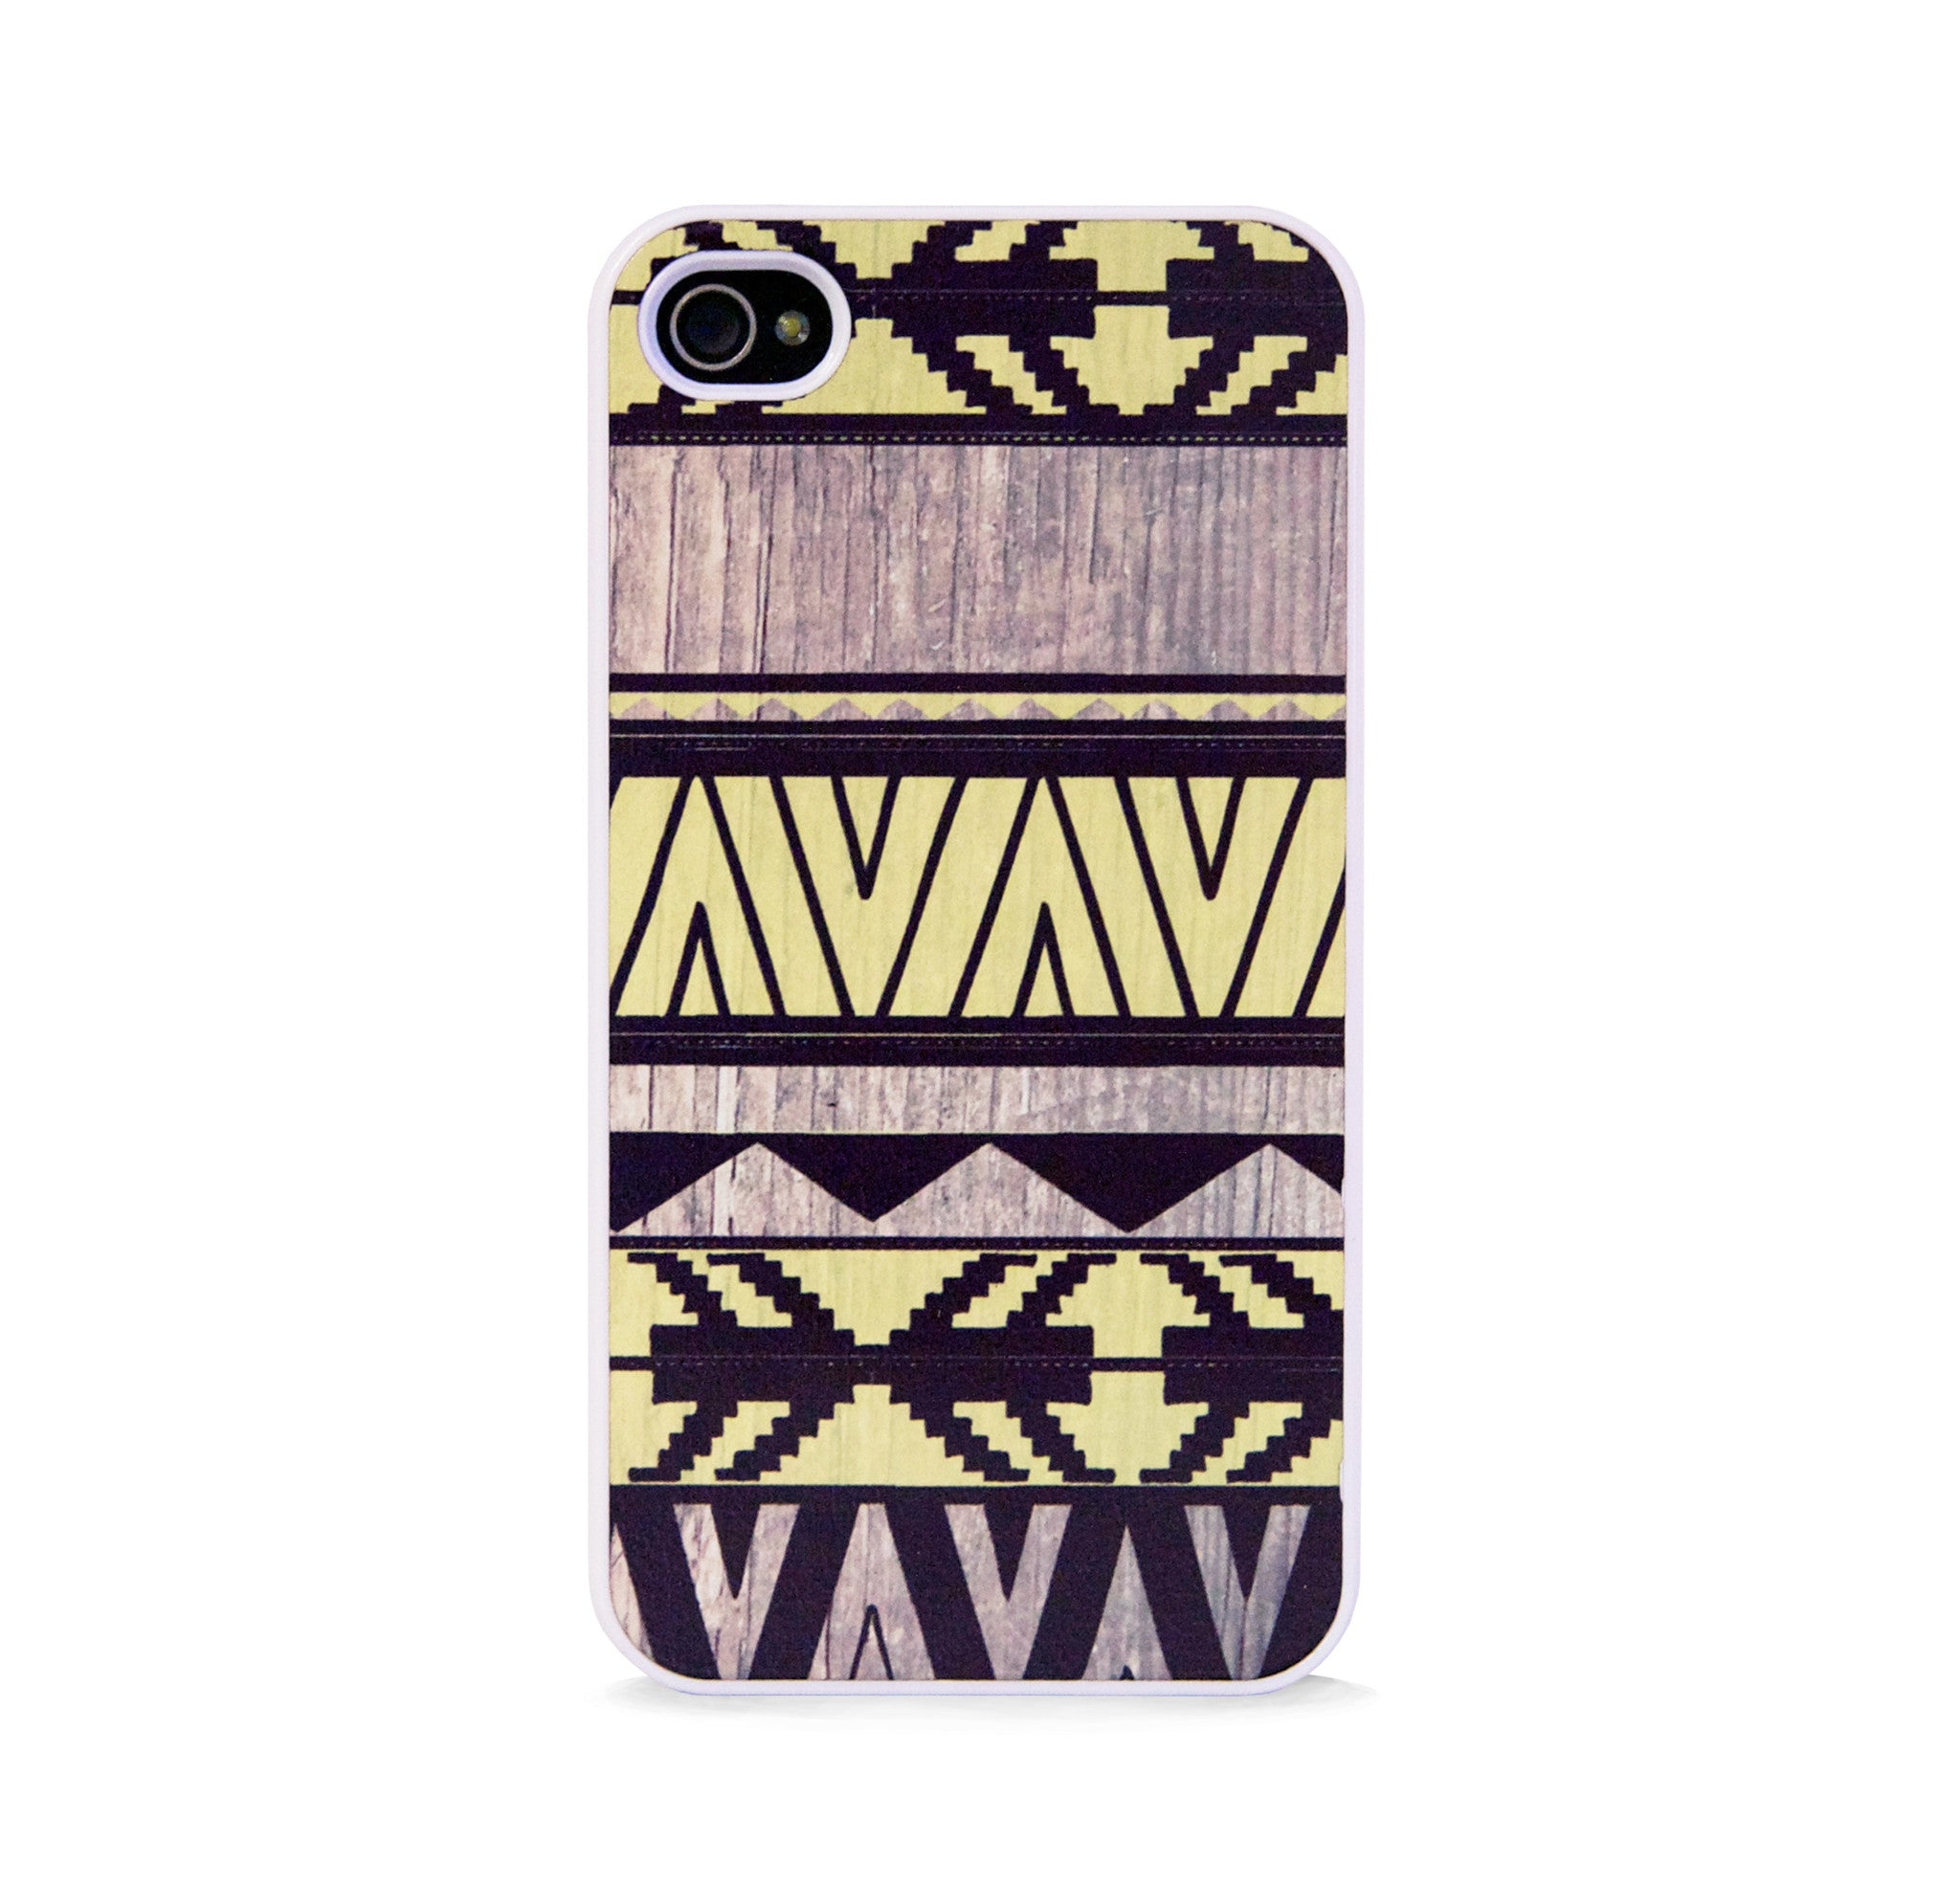 AZTEC GEO LEMON WOOD FOR IPHONE 4/4S